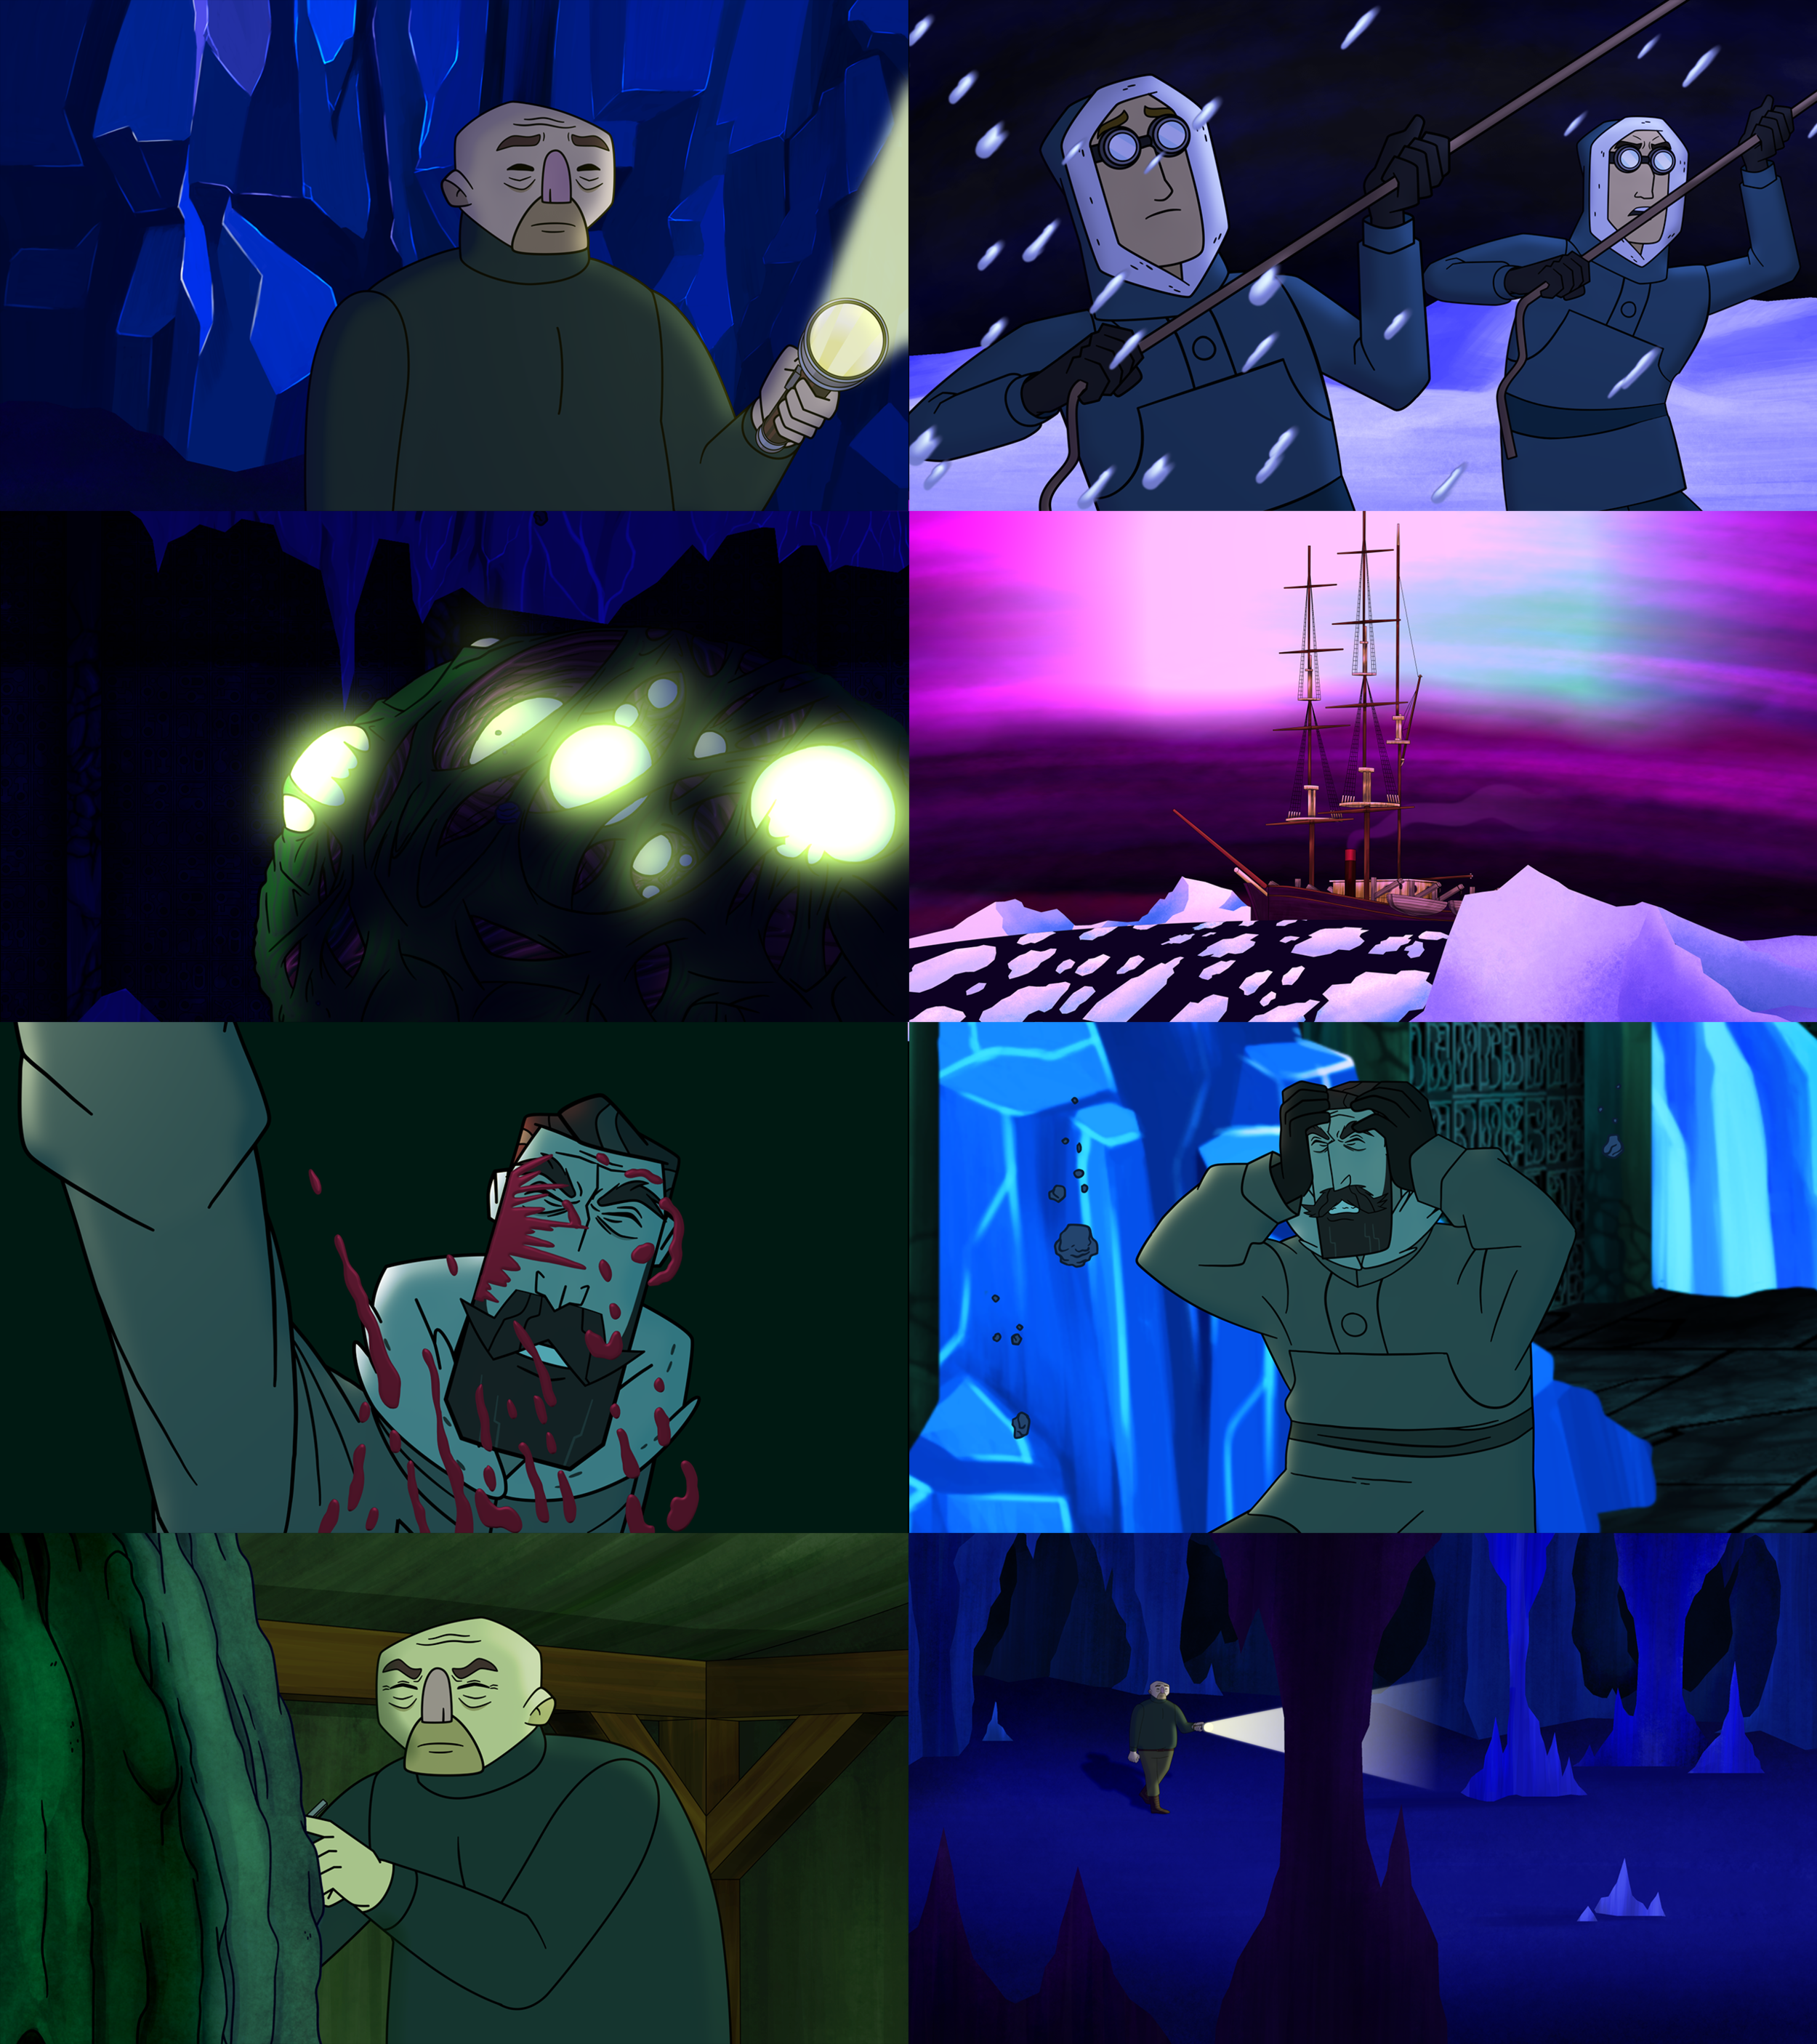 """MOUNTAINS OF MADNESS - MOUNTAINS OF MADNESSis an animated web series based on H.P. Lovecraft's Novella """"At the Mountains of Madness"""".In 1930 a team of scientists are utterly unprepared for what they discover at the bottom of the world.STRANGE CREATURESfrom beyond time and space wreck HAVOCon the group. And the survivors must face a truth more chilling than a LONELY DEATHon the frozen wastes of Antarctica.Watch our proof of concept video below. Find more episode and info at:http://mountainsofmadnessseries.com/"""